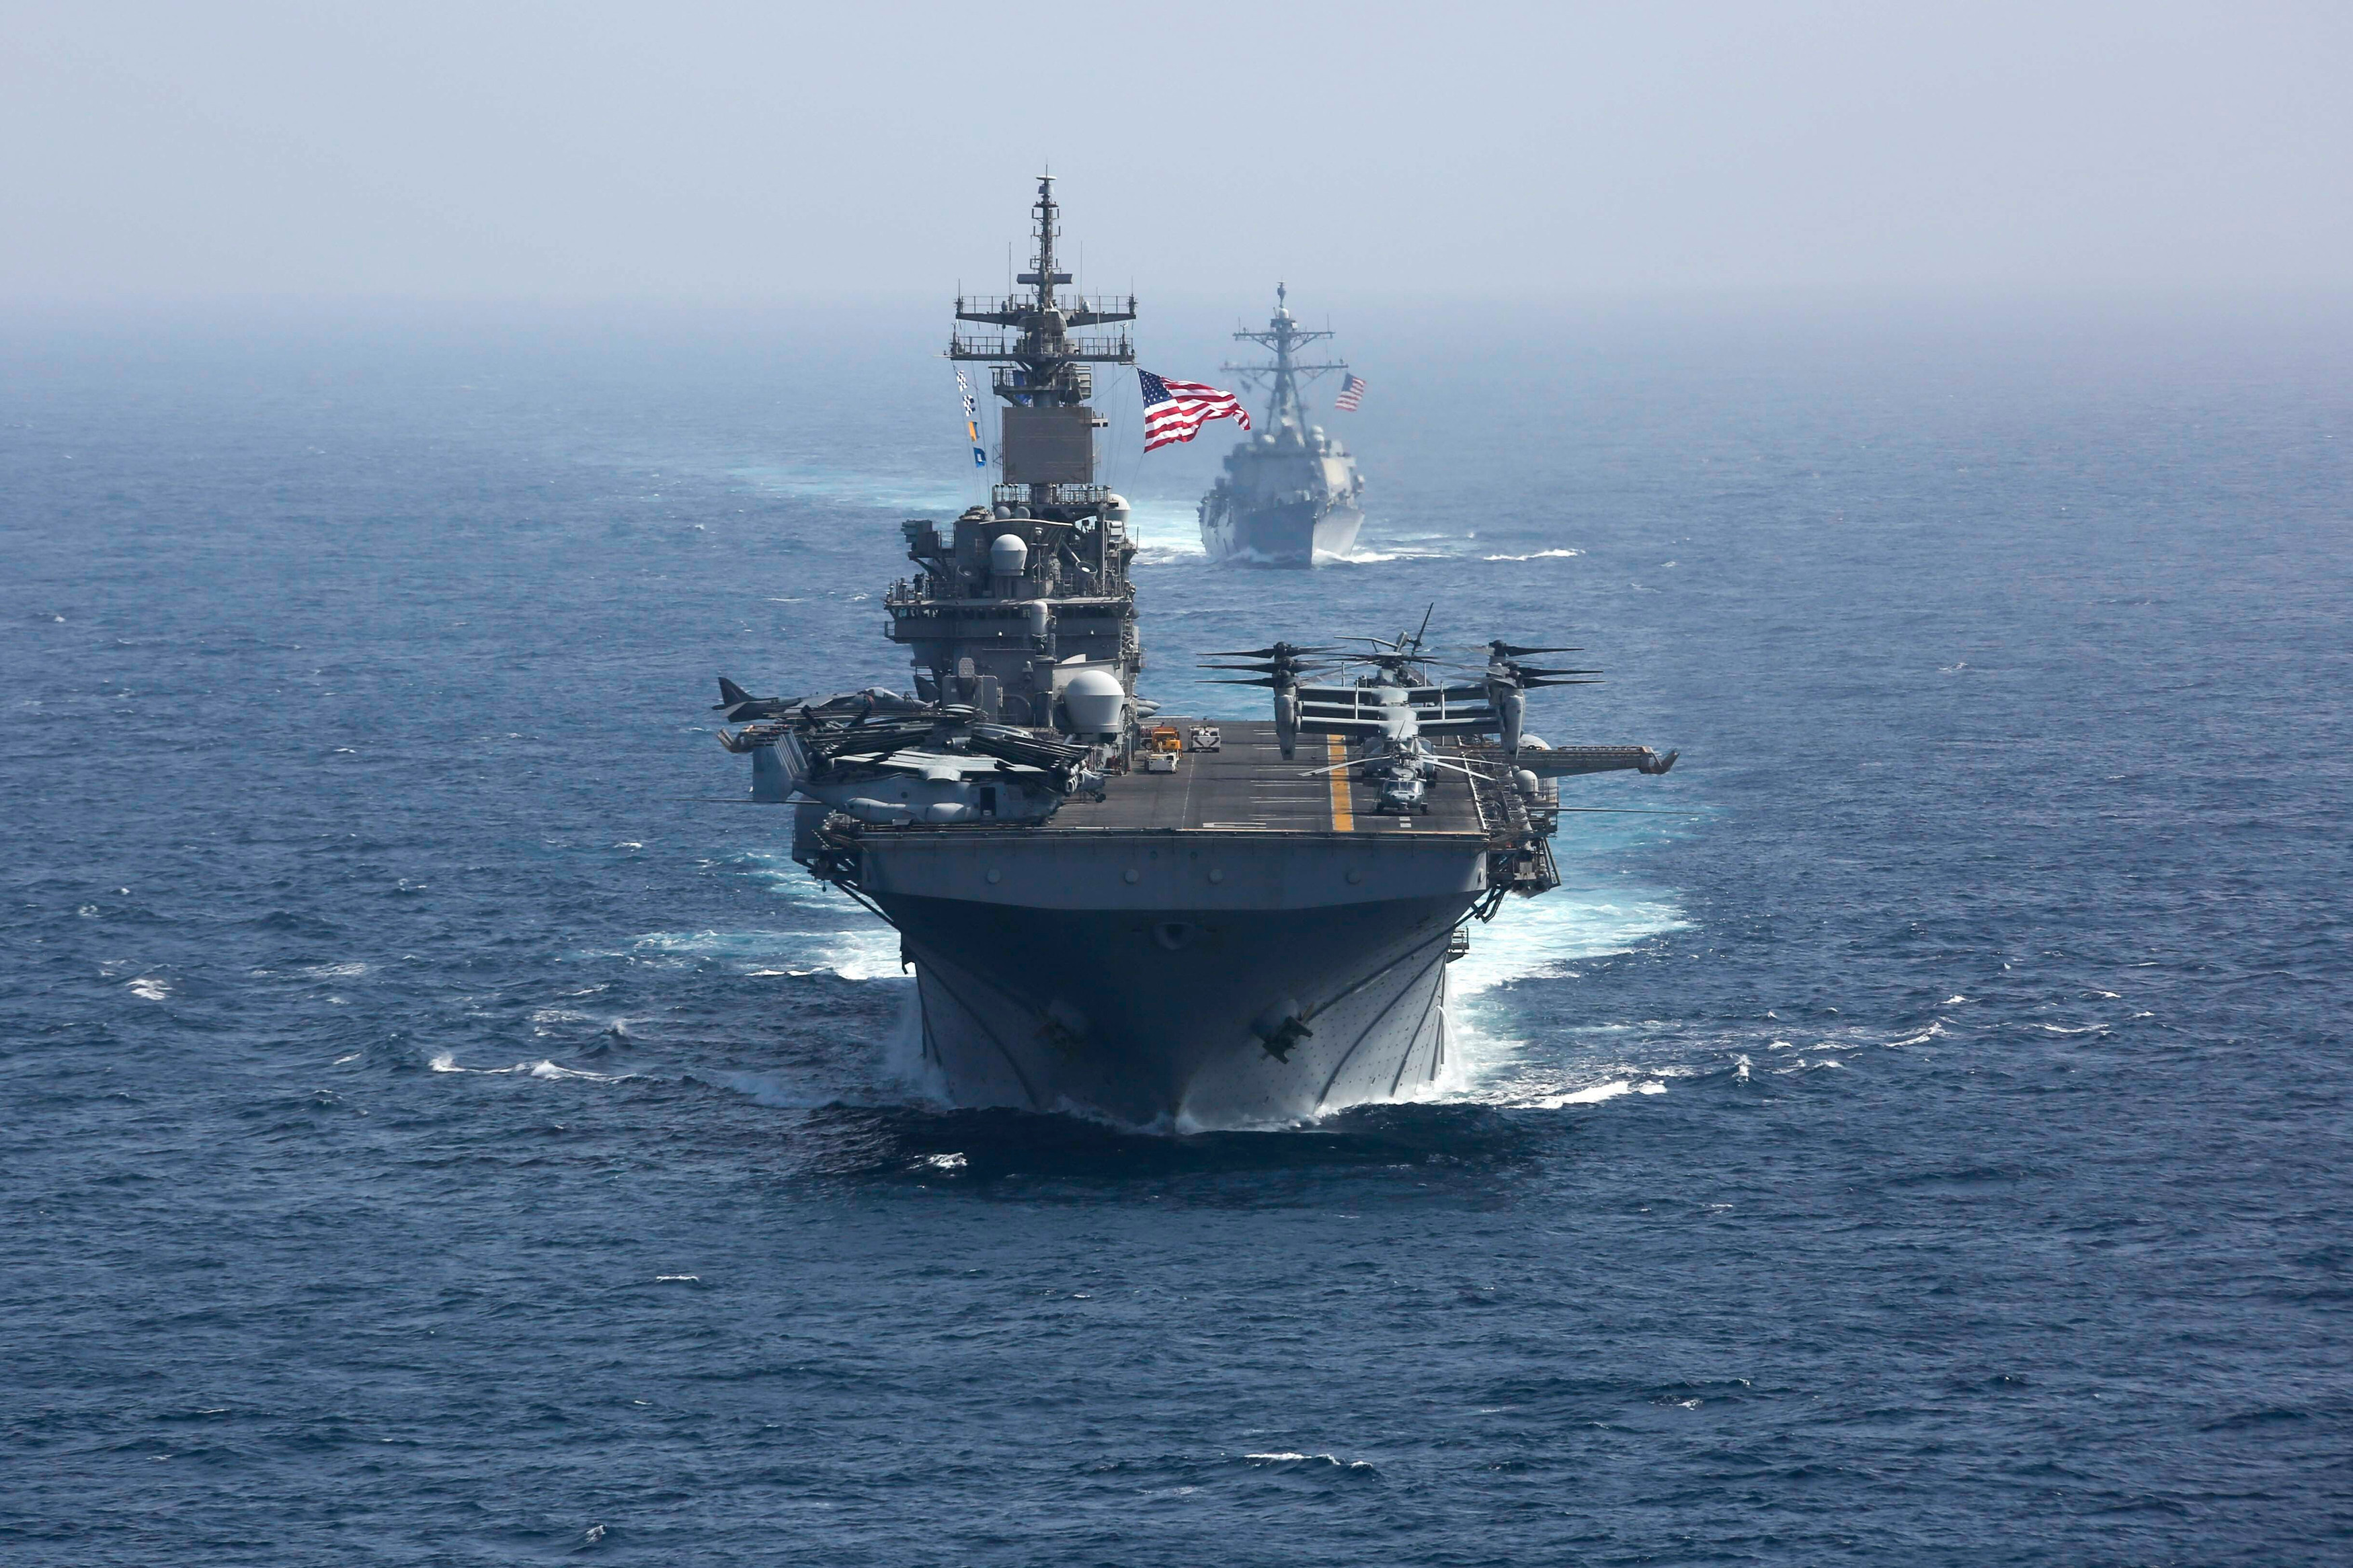 The amphibious assault ship USS Kearsarge (front) and the Arleigh Burke-class guided-missile destroyer USS Bainbridge